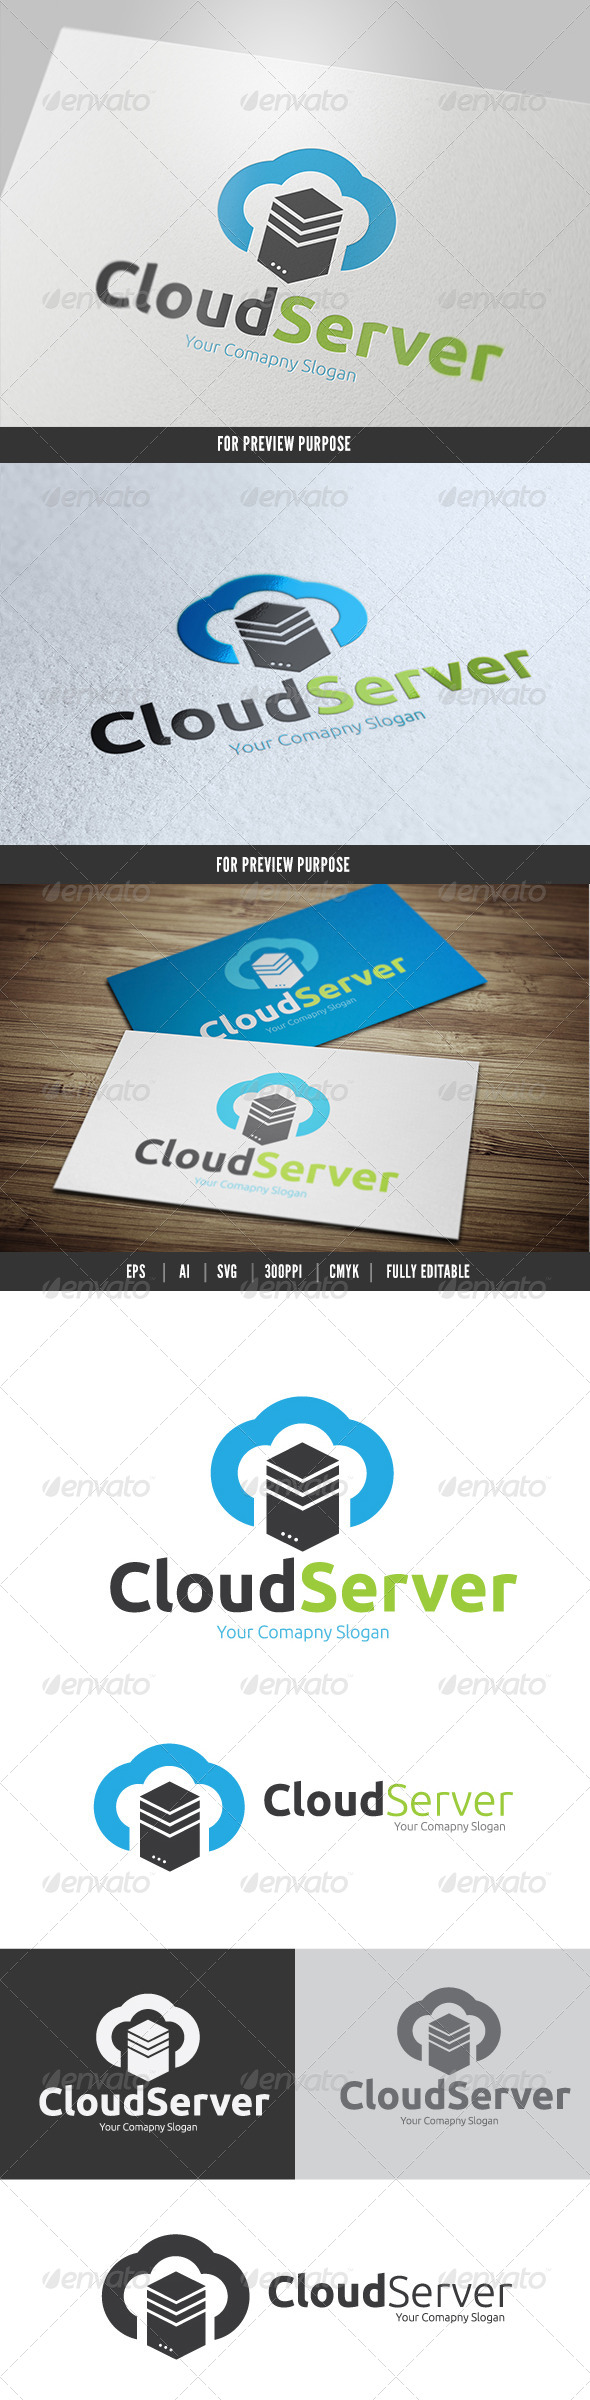 GraphicRiver Cloud Server 6200154